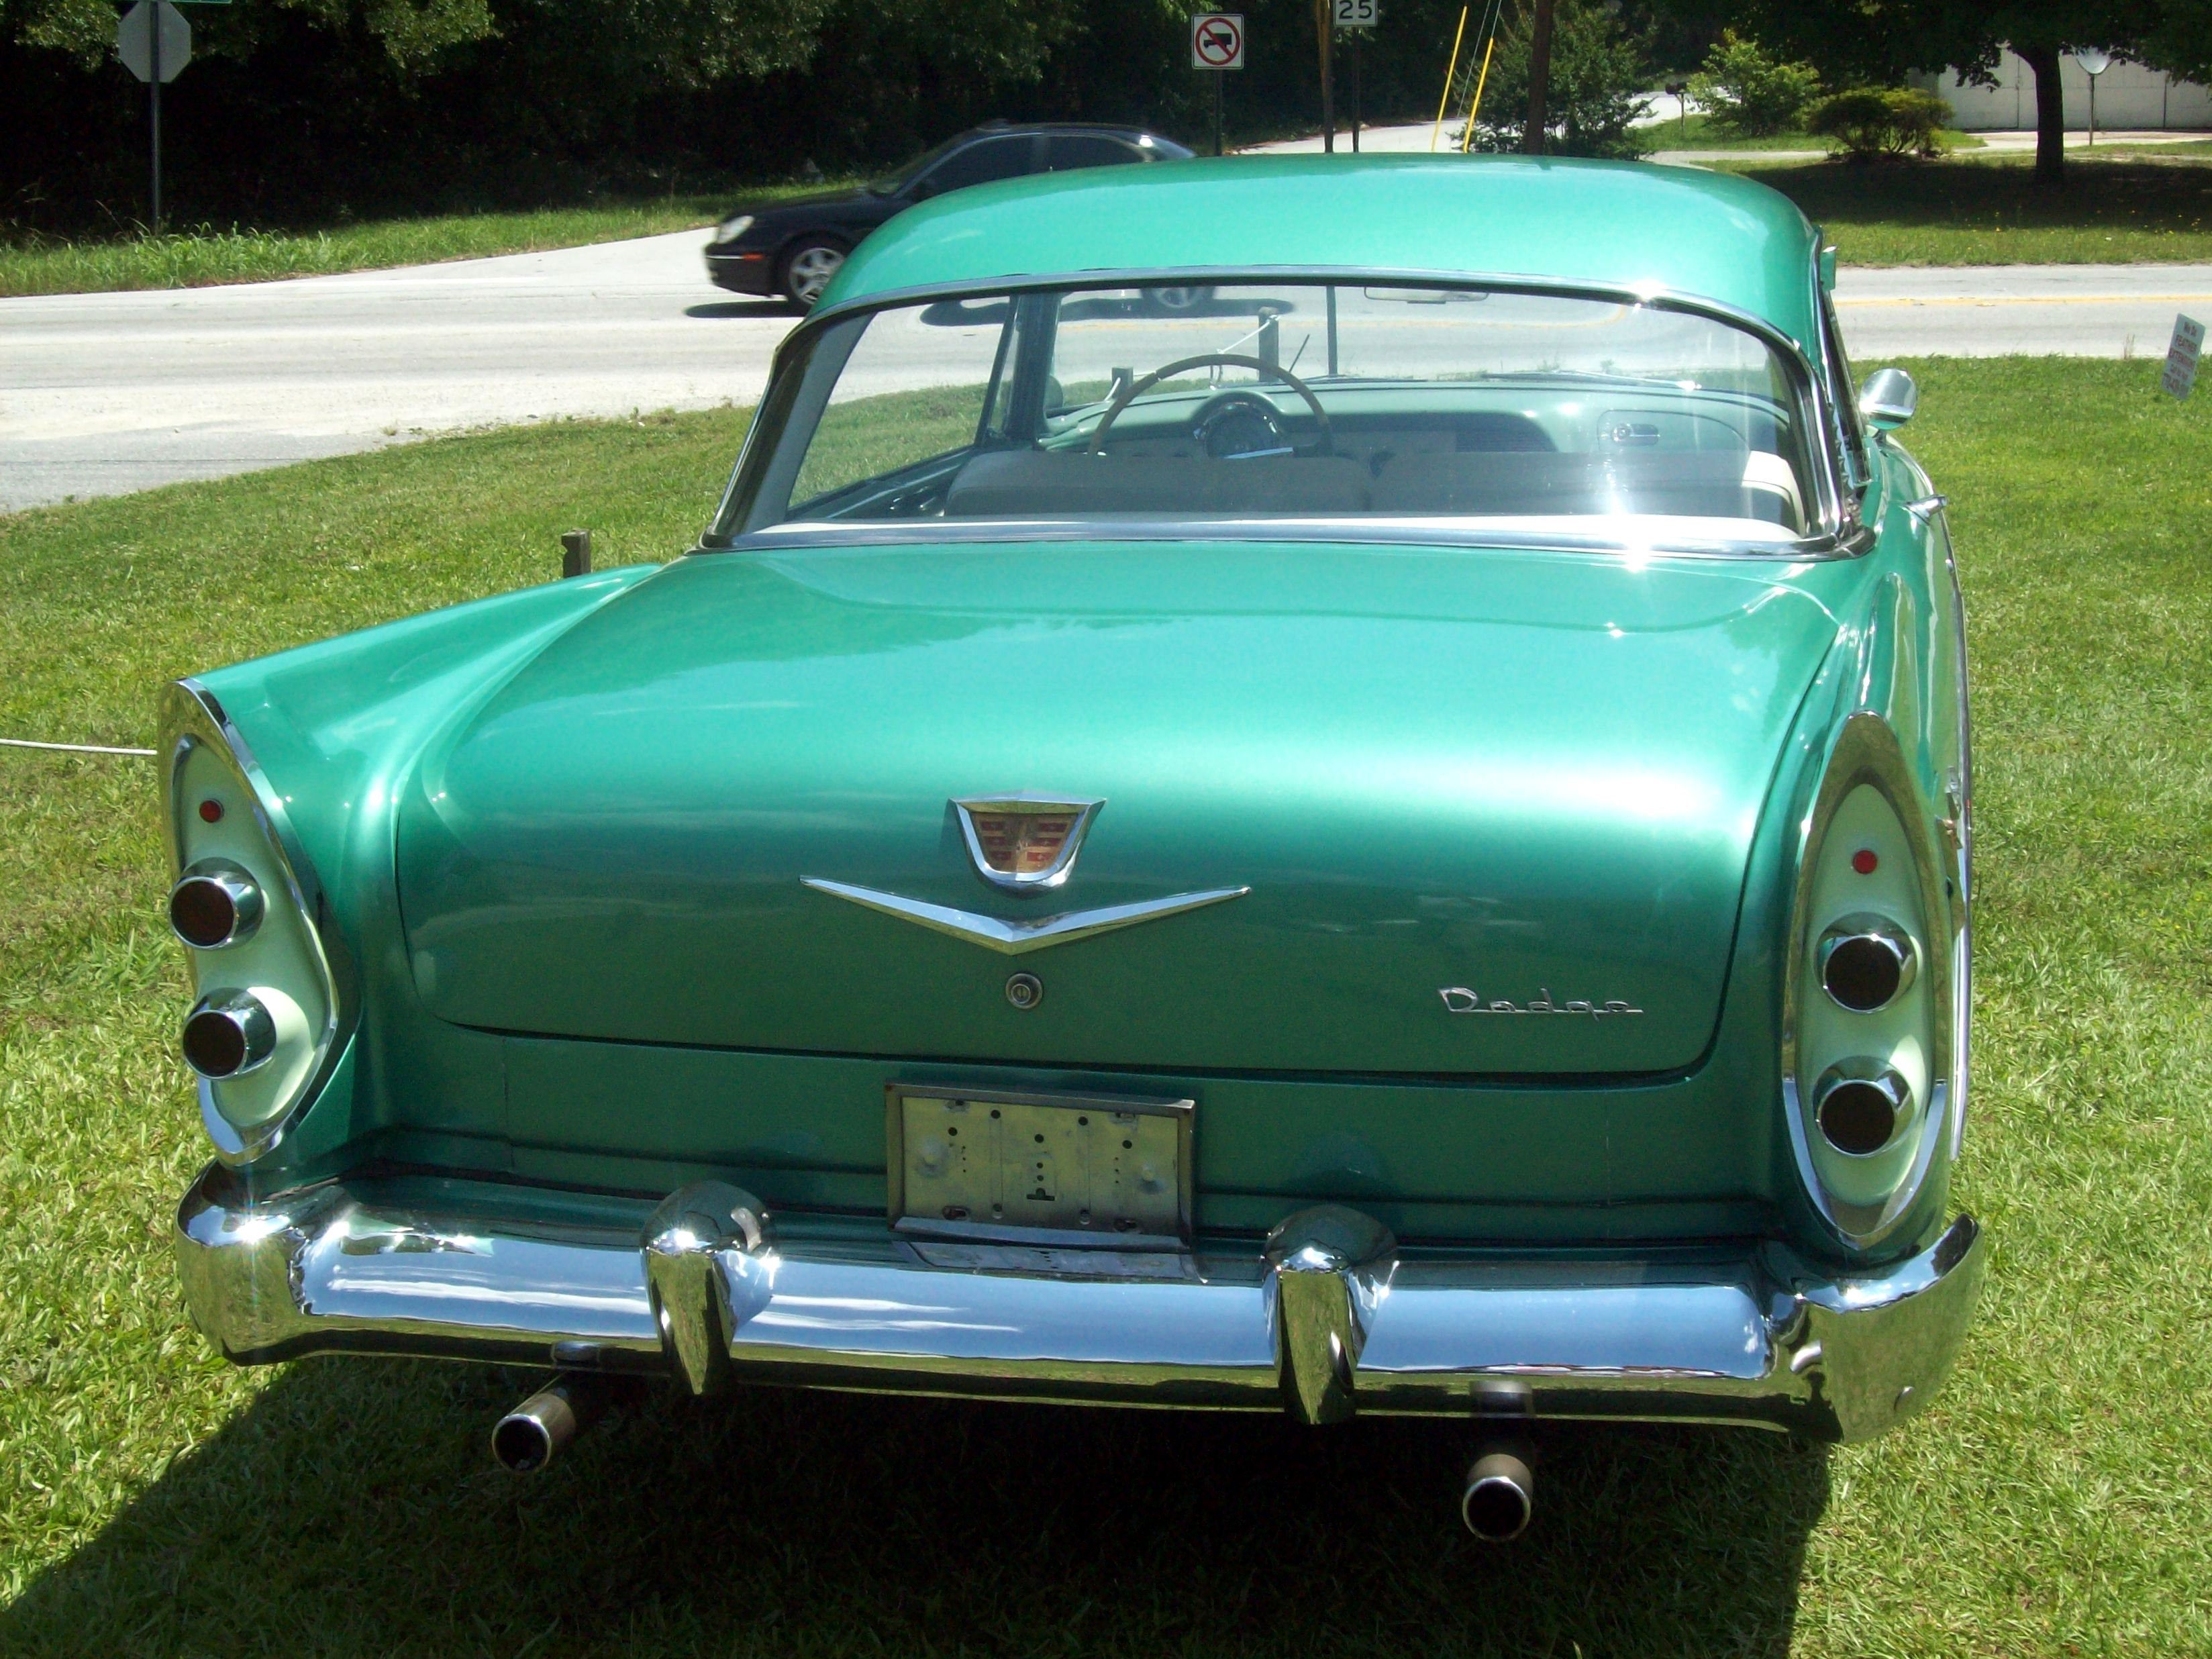 1956 Dodge Royal Lancer 2 dr hdtp